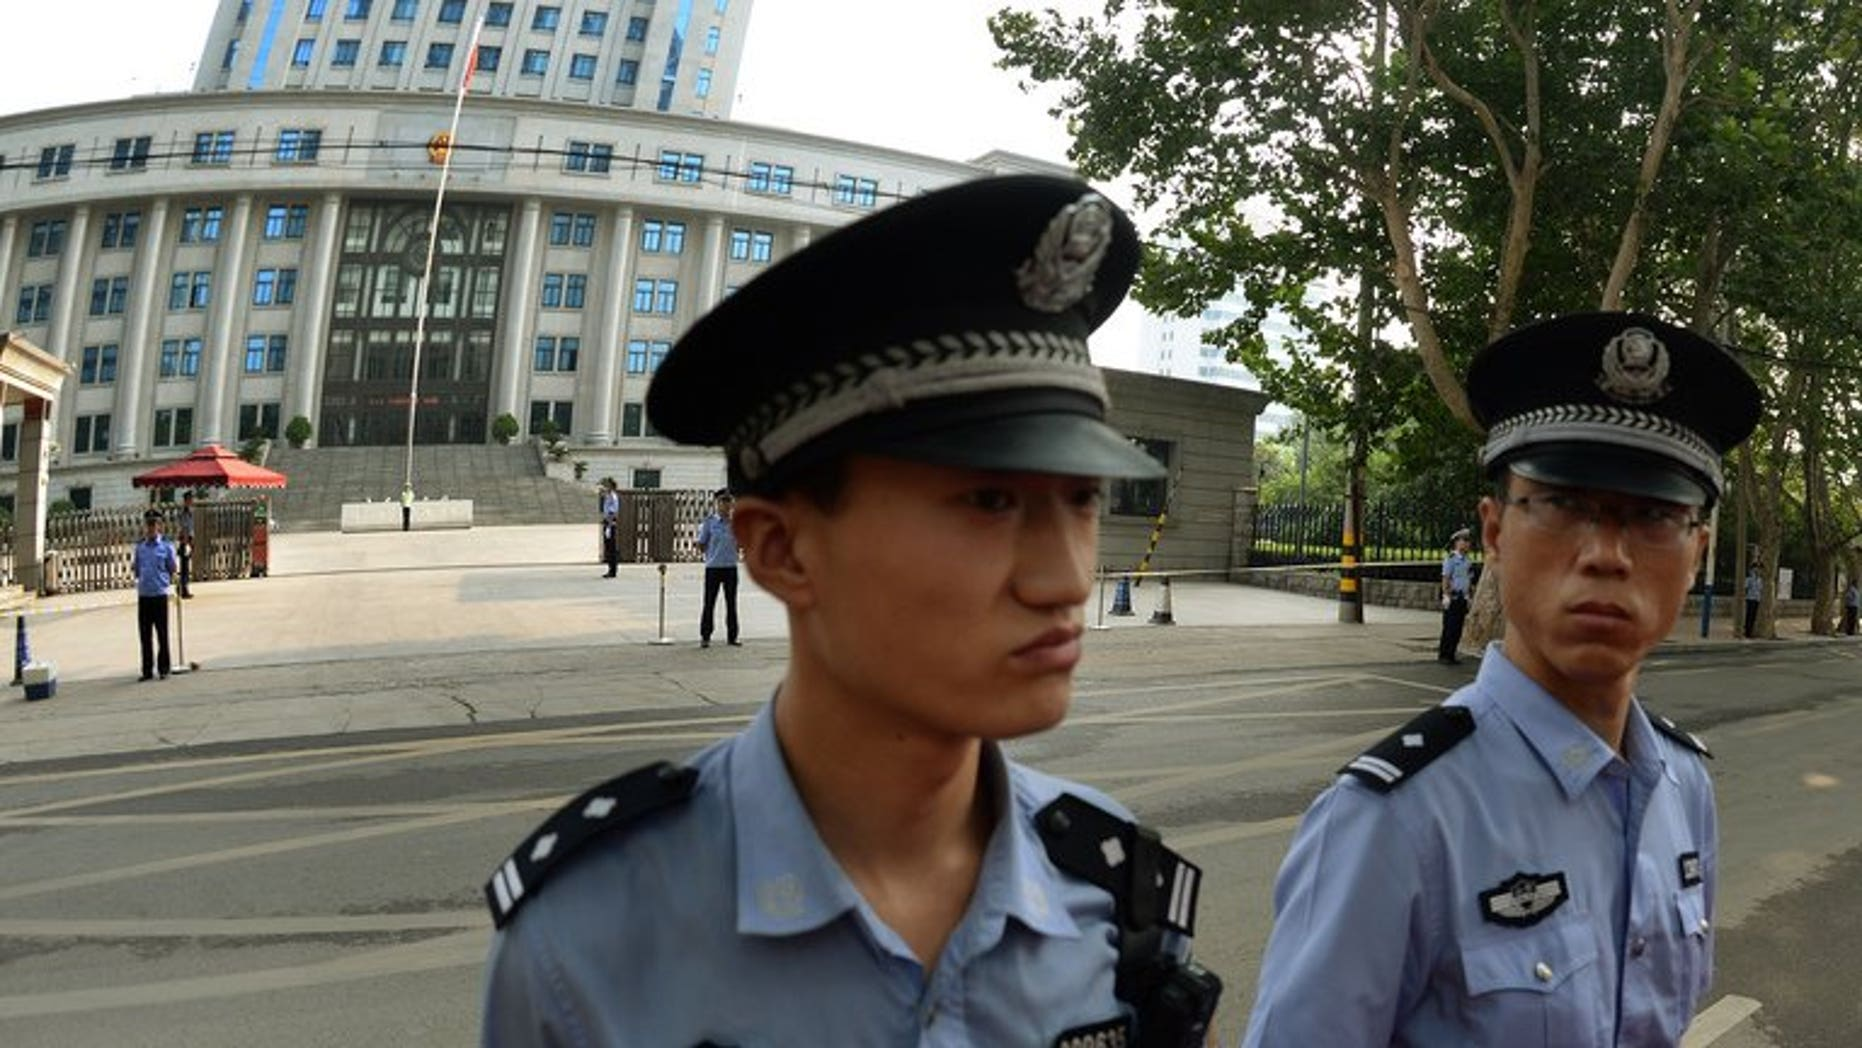 Illustration: Police outside a court in Beijing, where disgraced politician Bo Xilai was tried for graft